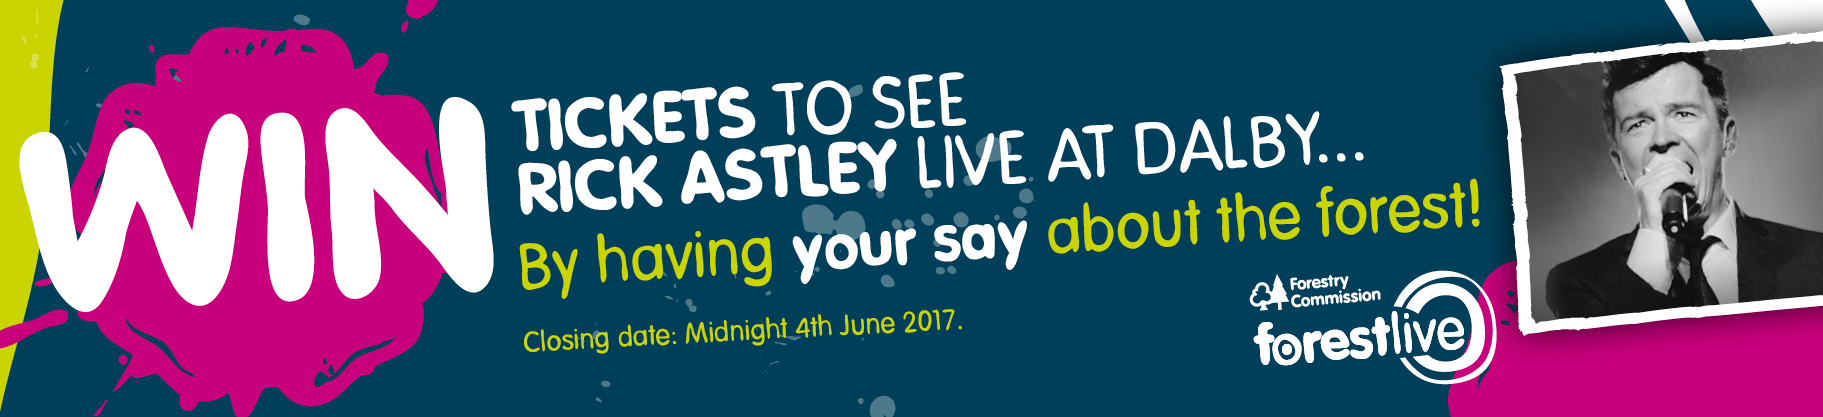 Win Tickets to see Rick Astley